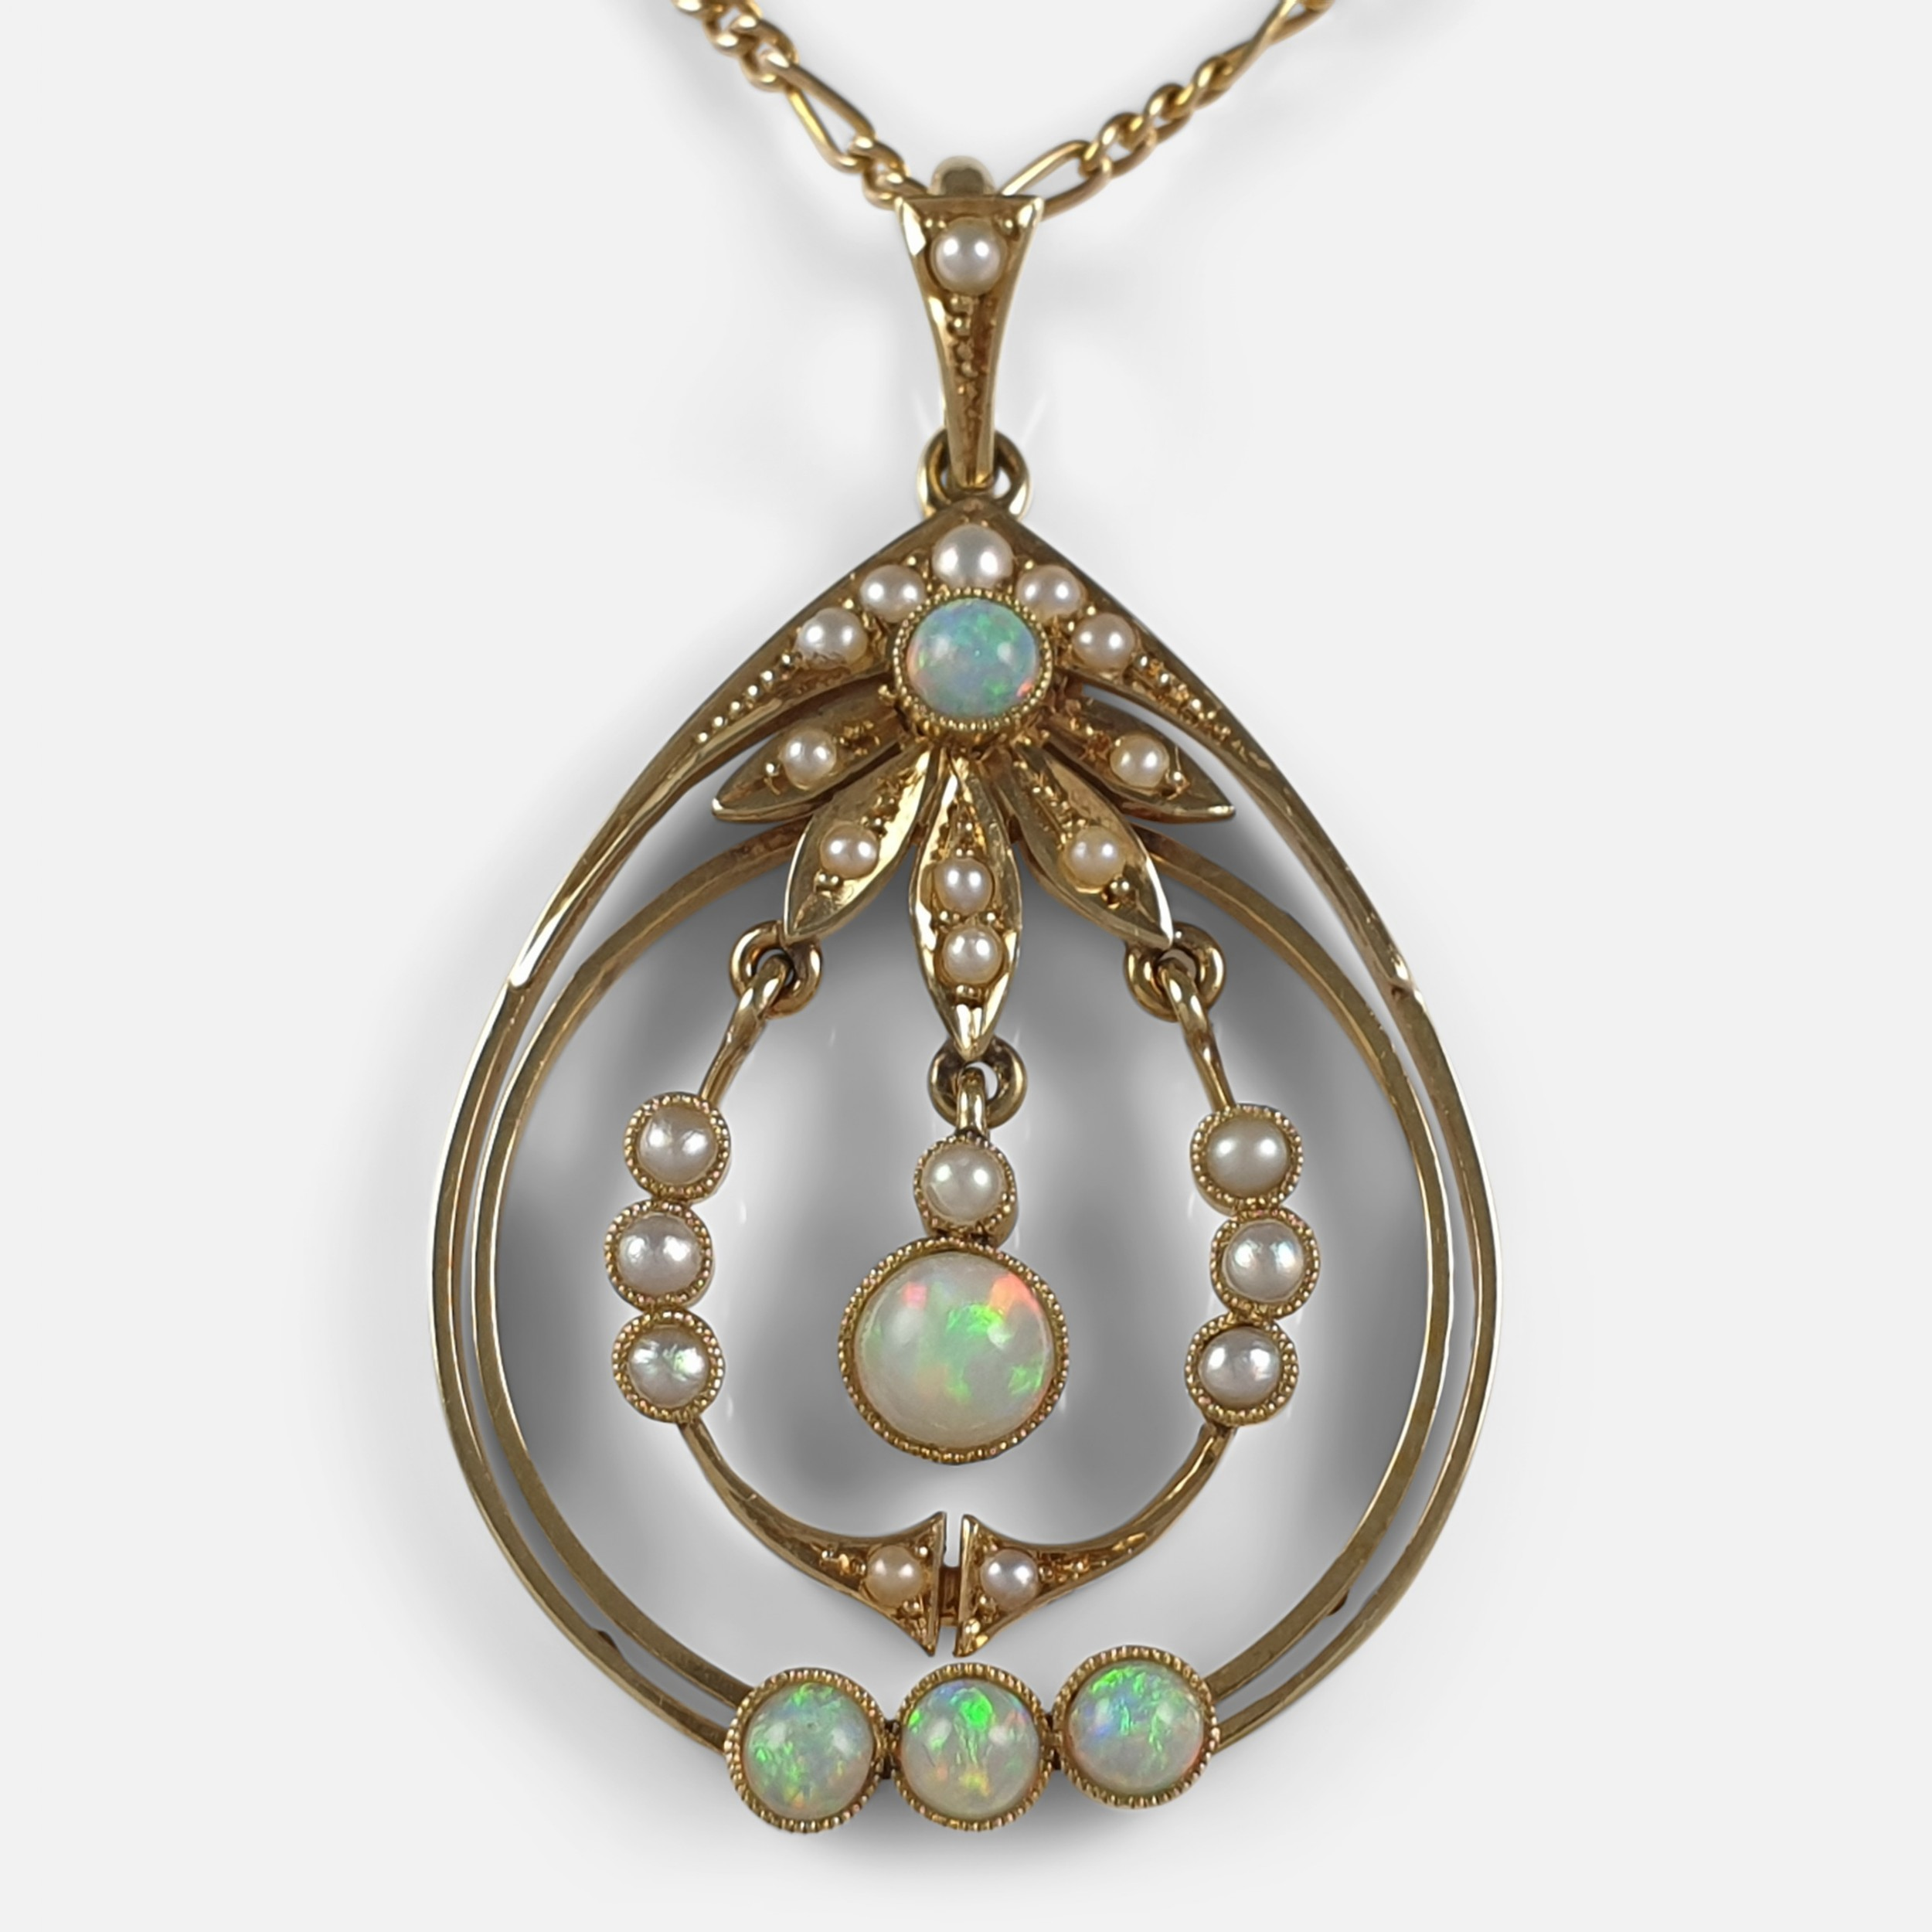 15ct yellow gold opal and pearl pendant and chain